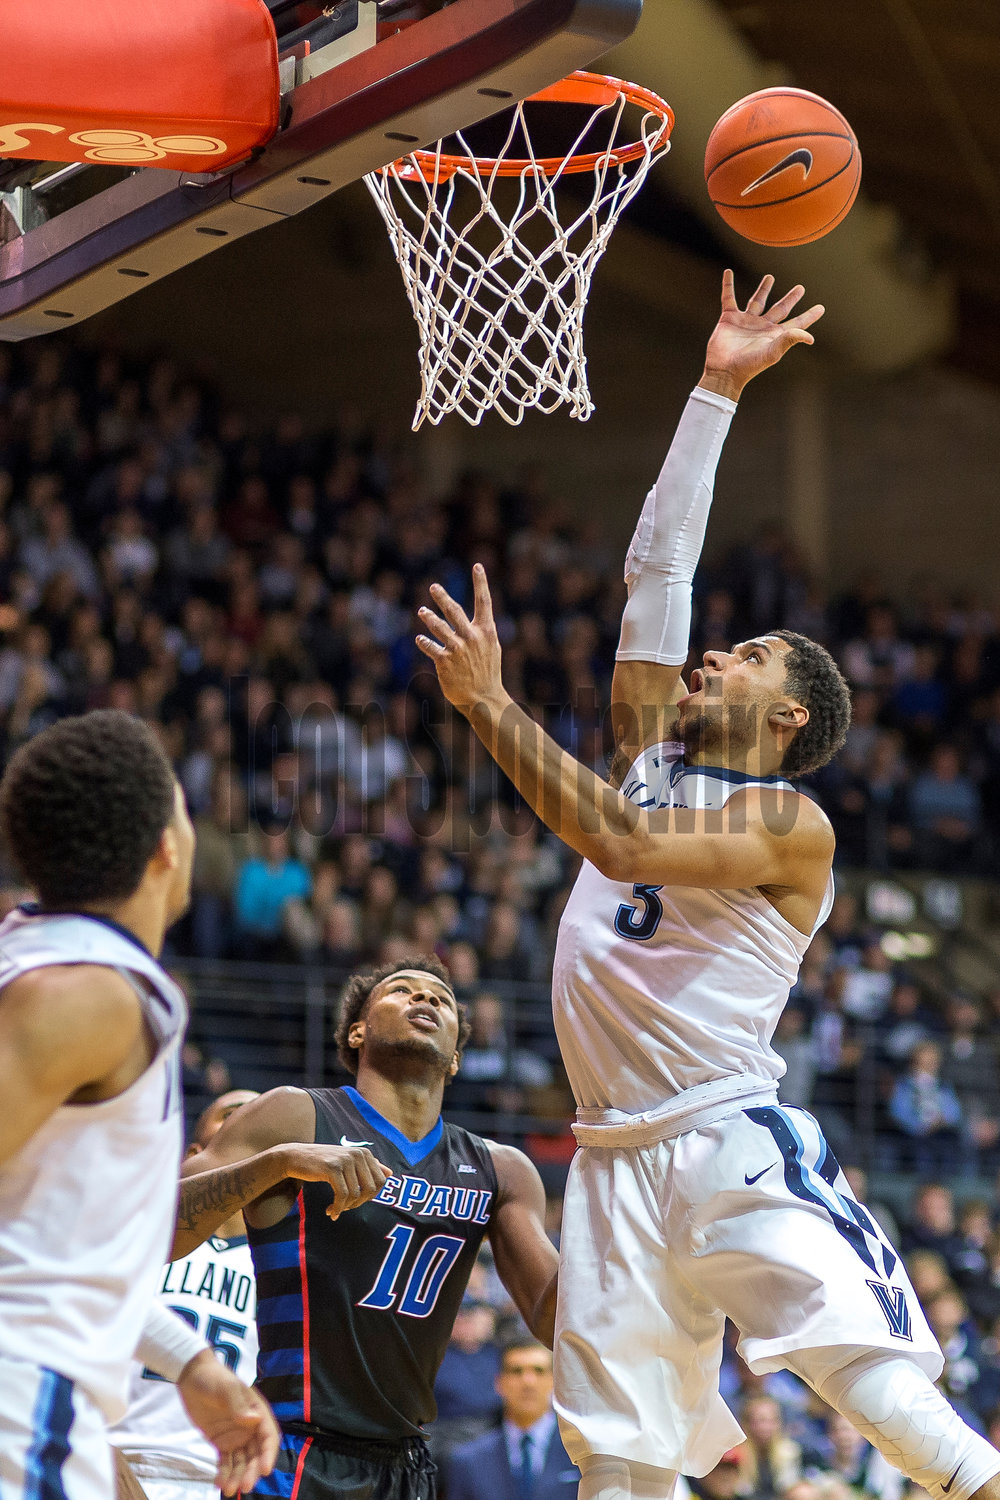 VILLANOVA, PA - DECEMBER 28:  Villanova Wildcats guard Josh Hart (3) releases his lay up during the game between the Villanova Wildcats and the DePaul Blue Demons on December 28, 2016 at The Pavilion in Villanova PA.(Photo by Gavin Baker/Icon Sportswire)